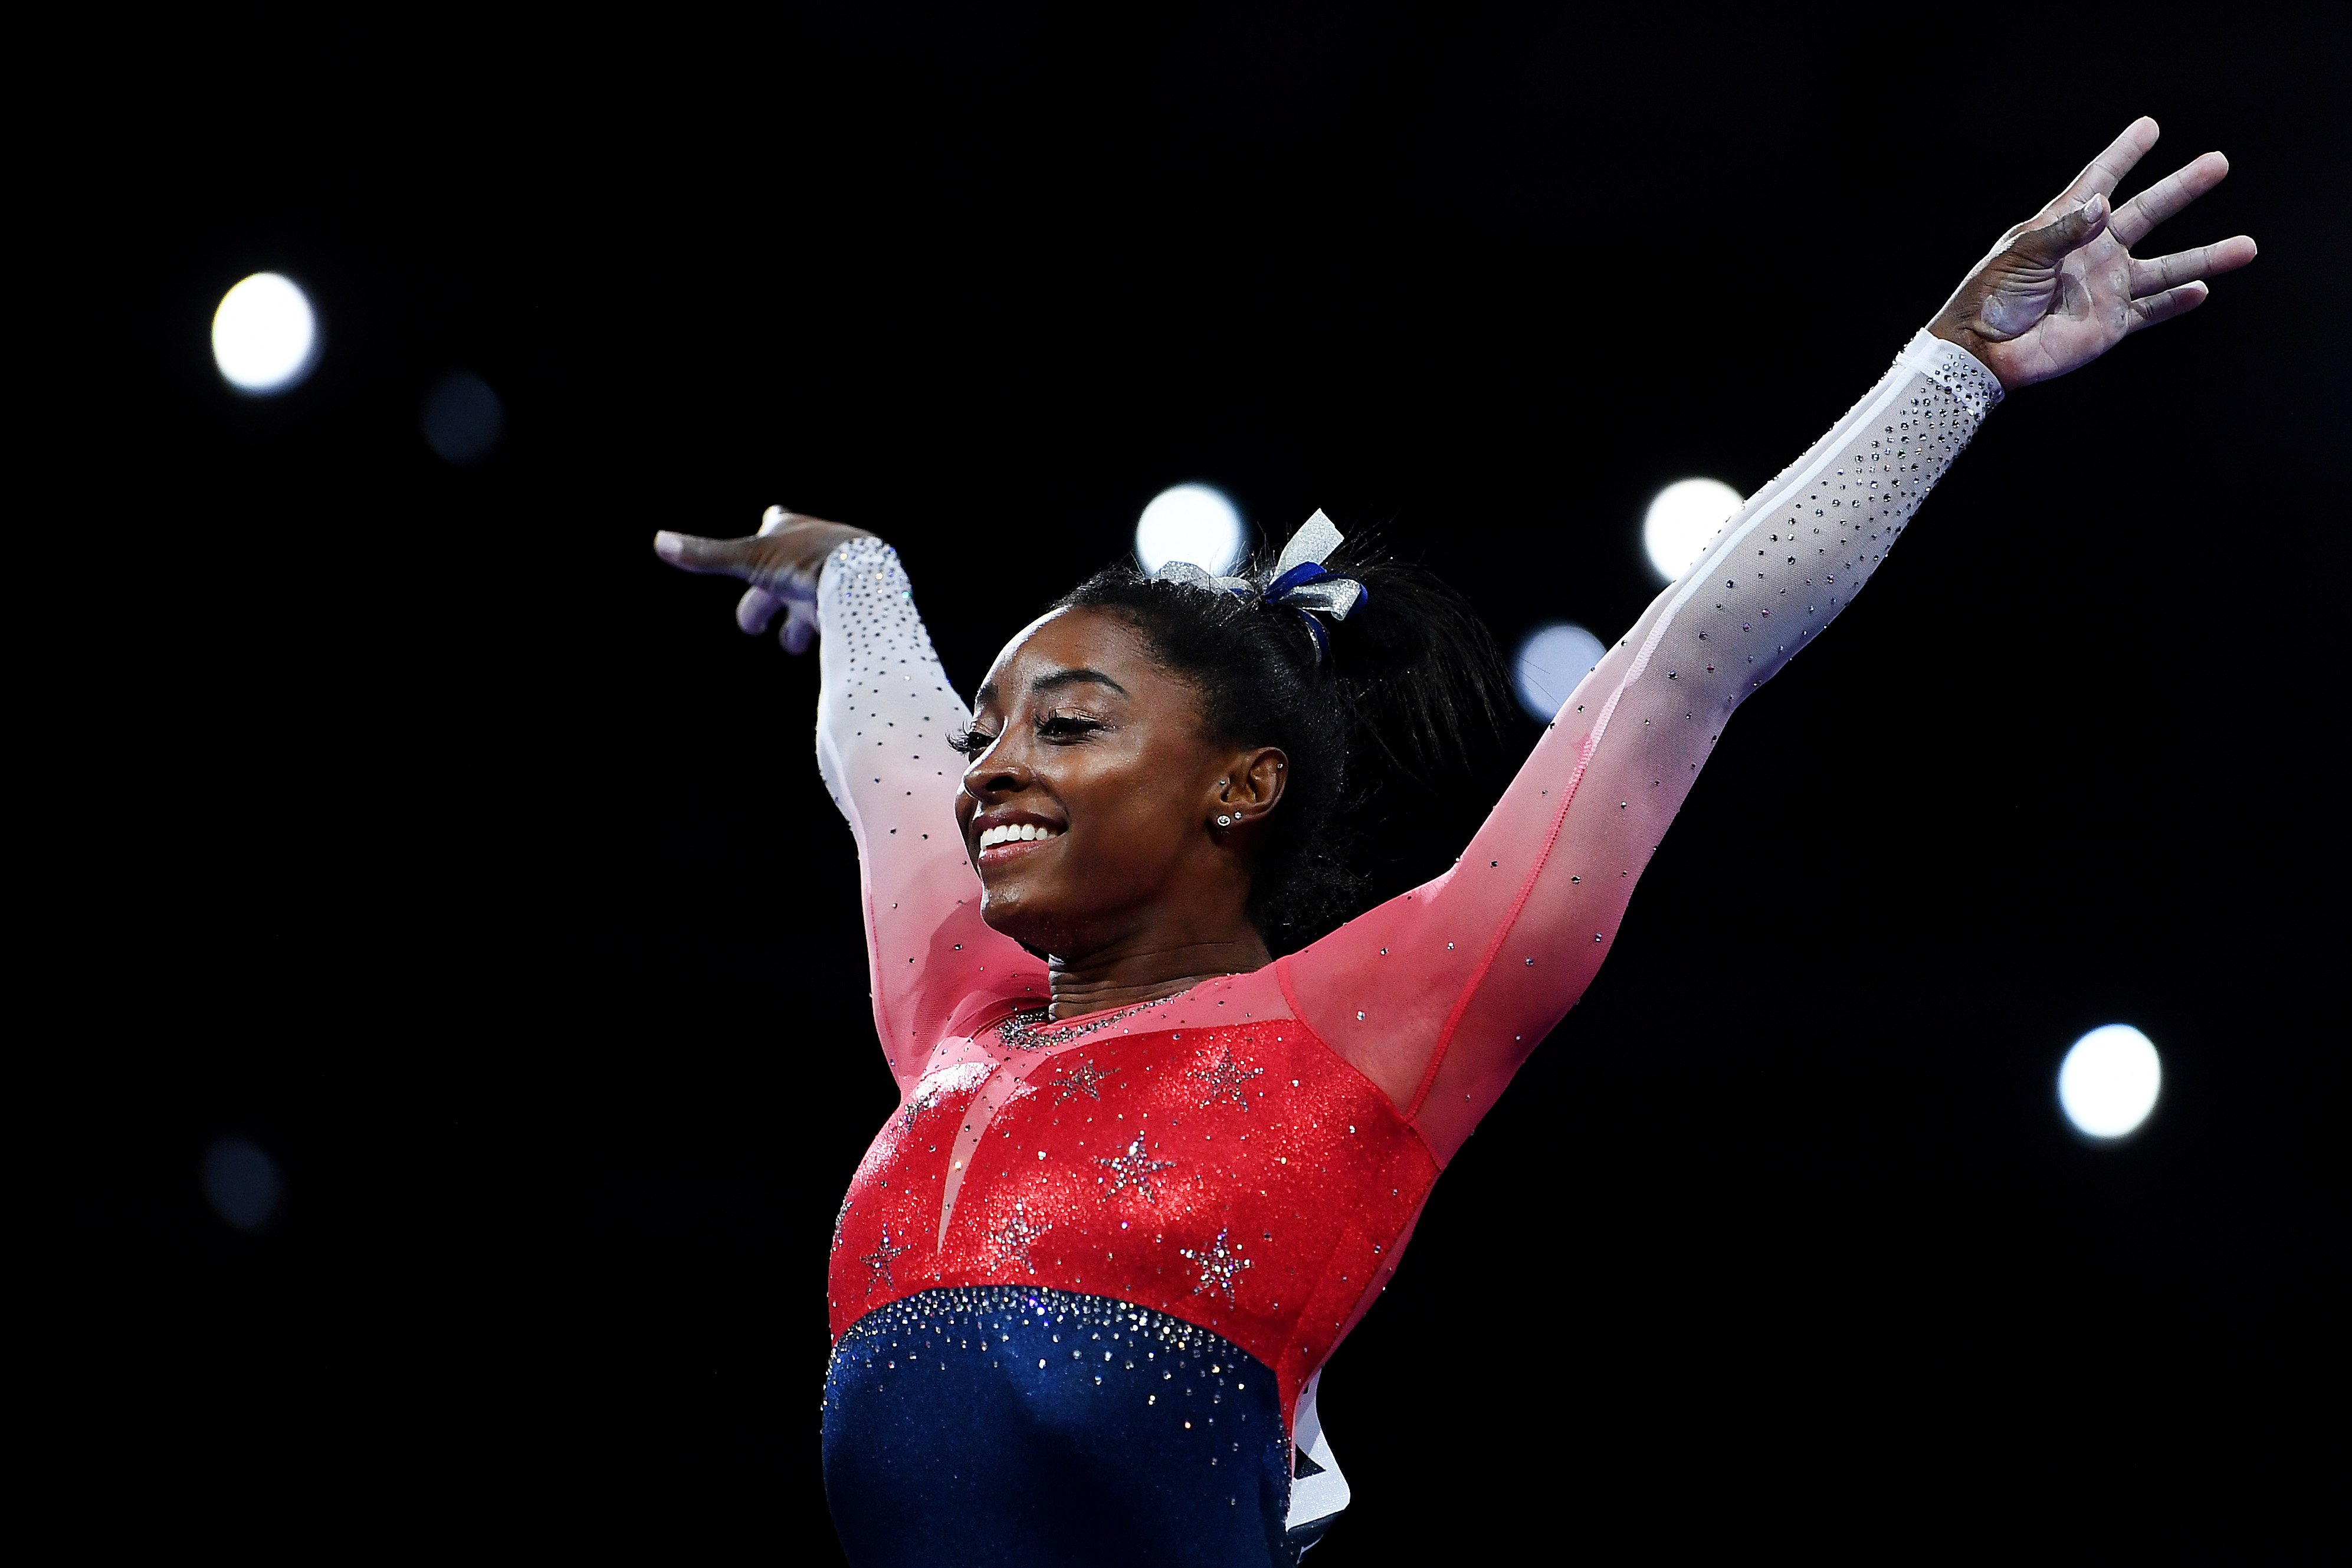 Simone Biles at  the FIG Artistic Gymnastics World Championships on October 08, 2019 in Stuttgart, Germany.| Source: Getty Images